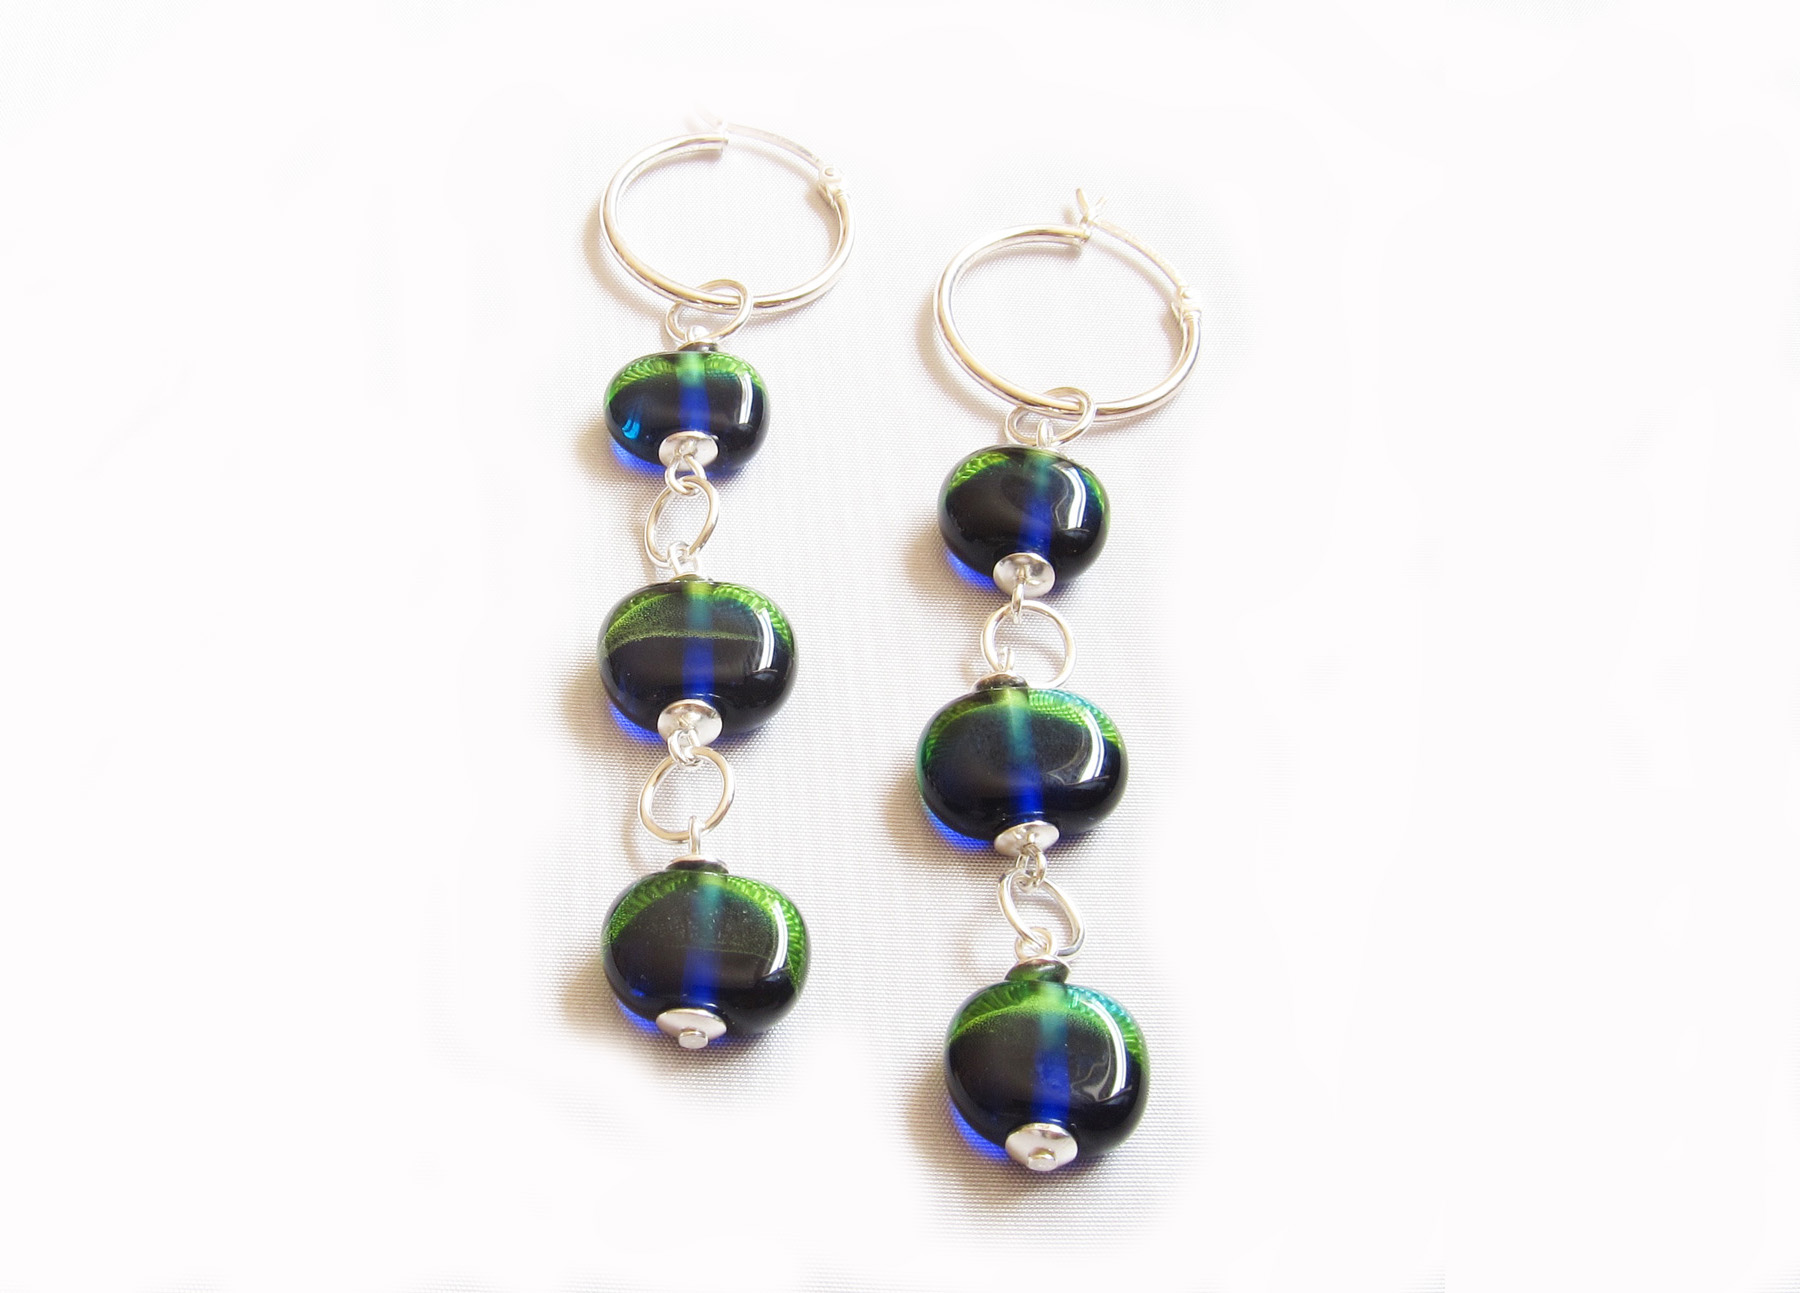 Peacock Disk Bead Hoop Earrings